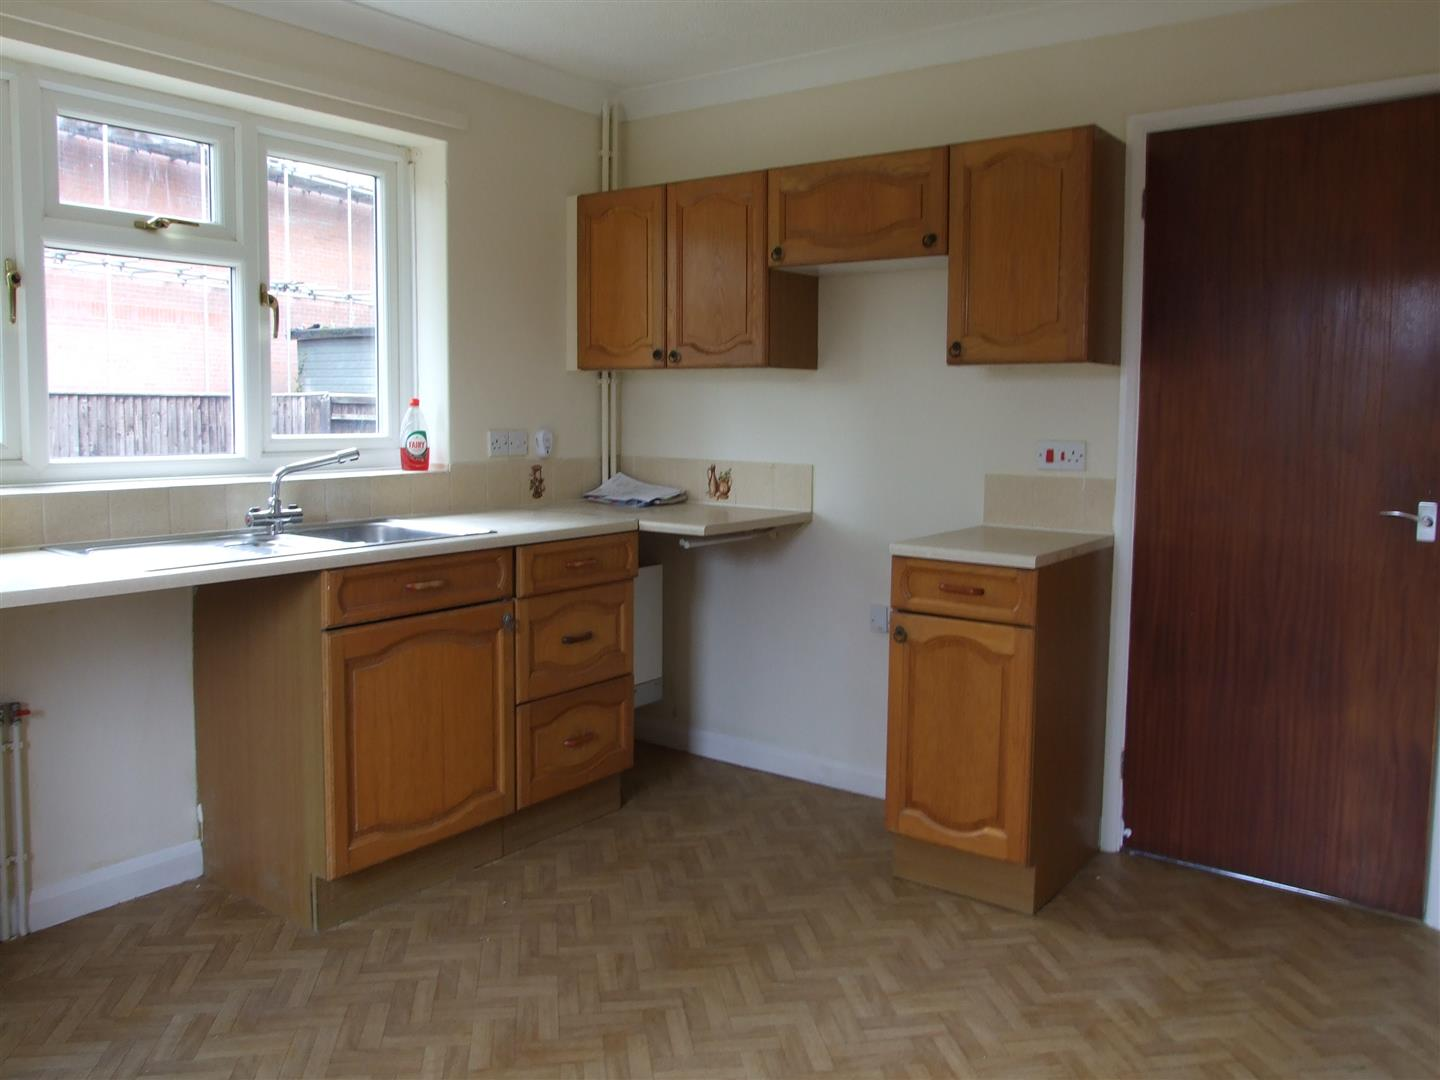 2 bed detached bungalow to rent in Long Sutton Spalding, PE12 9EP 3